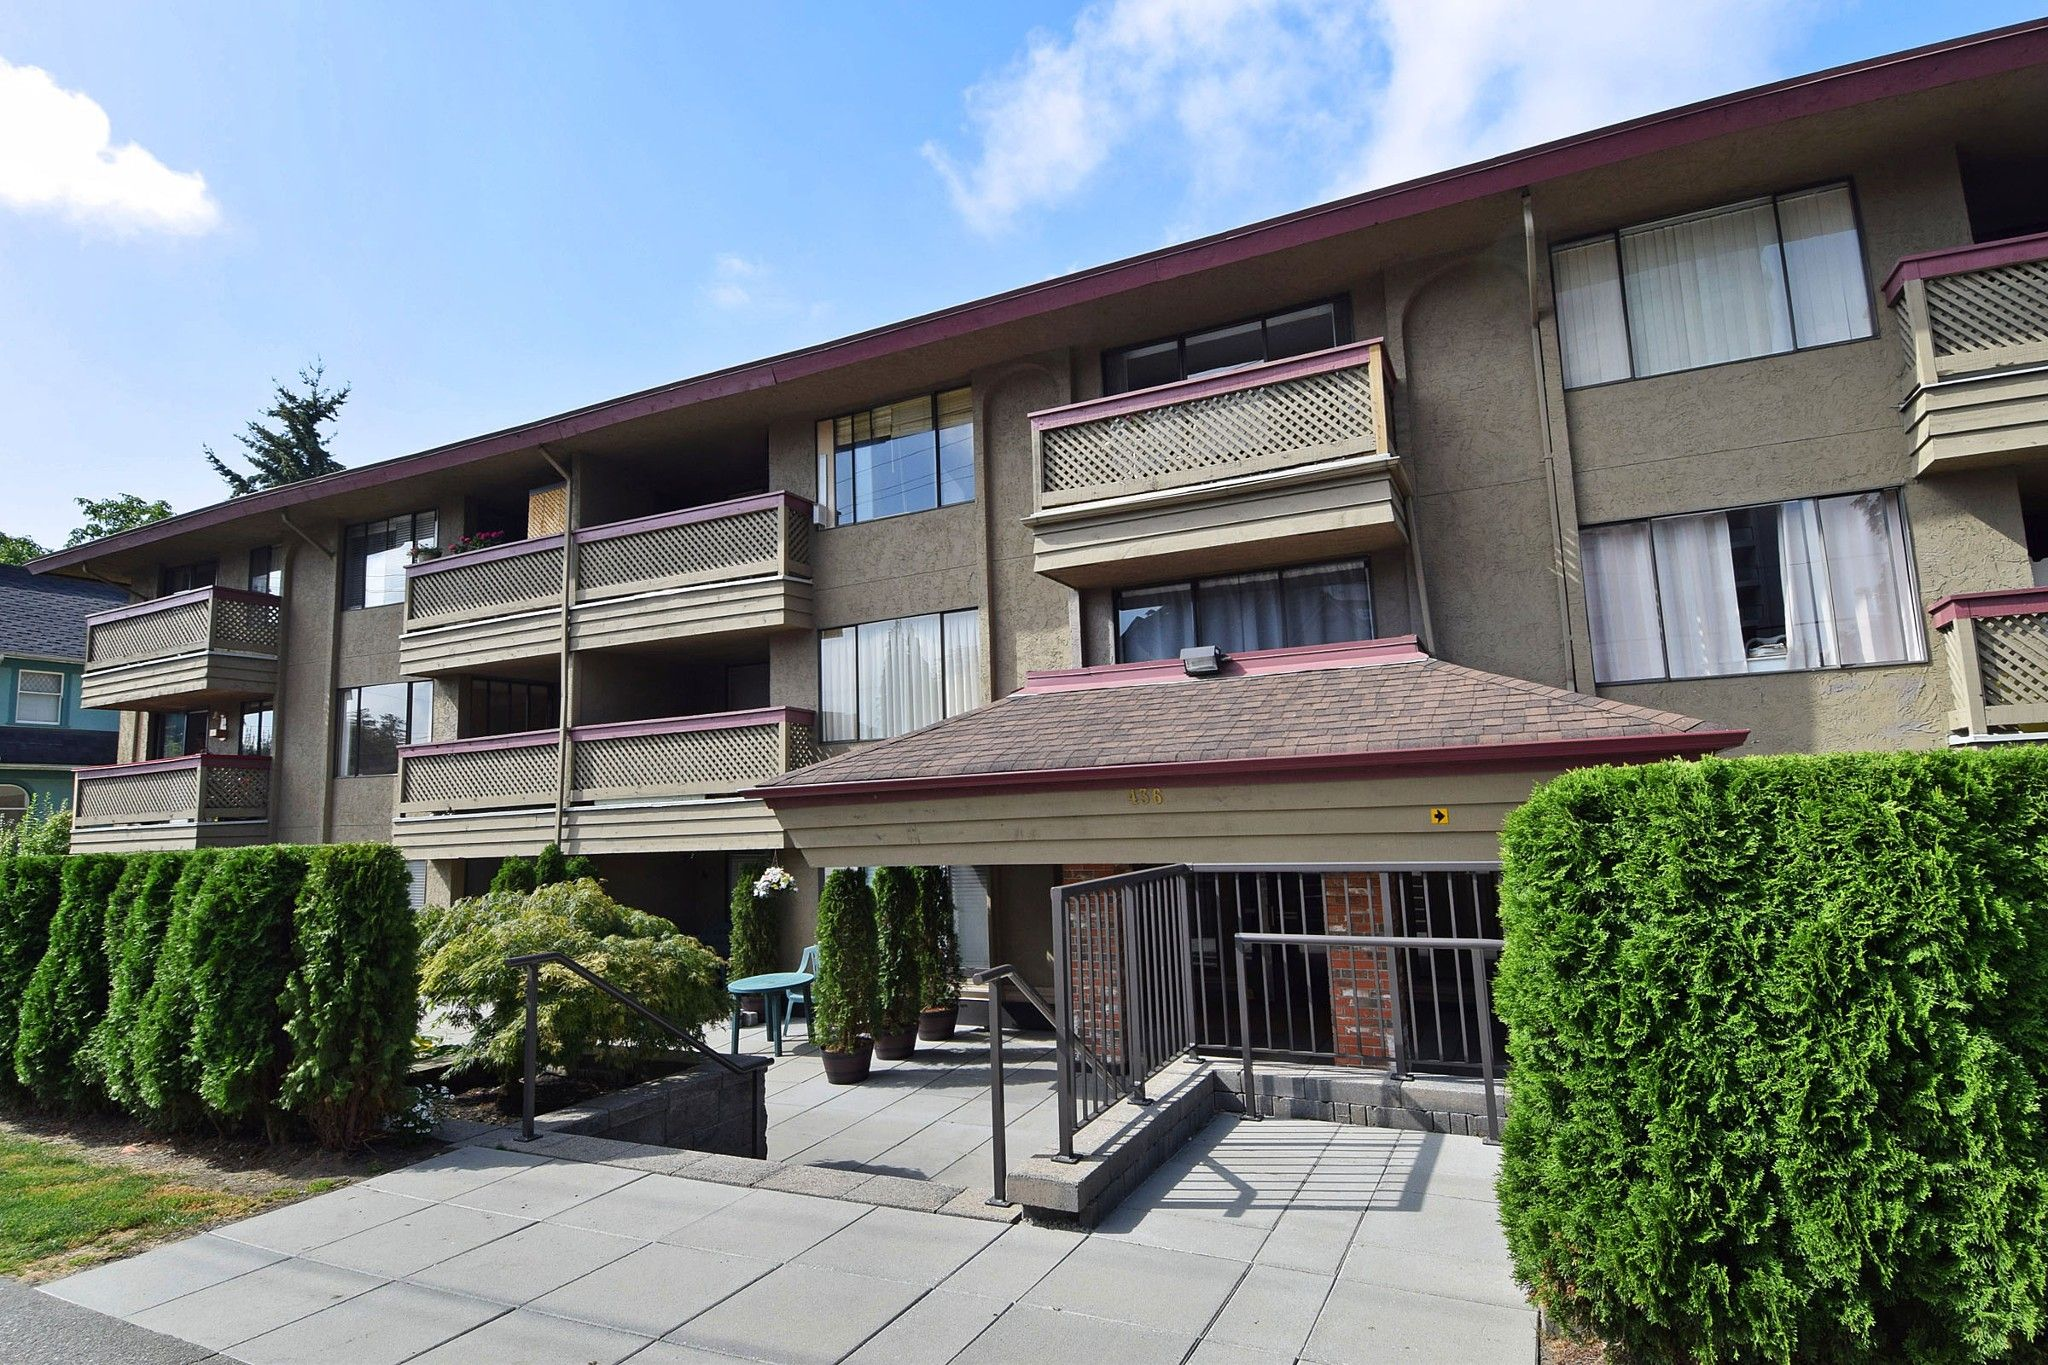 """Main Photo: 214 436 SEVENTH Street in New Westminster: Uptown NW Condo for sale in """"Regency Court"""" : MLS®# R2289839"""